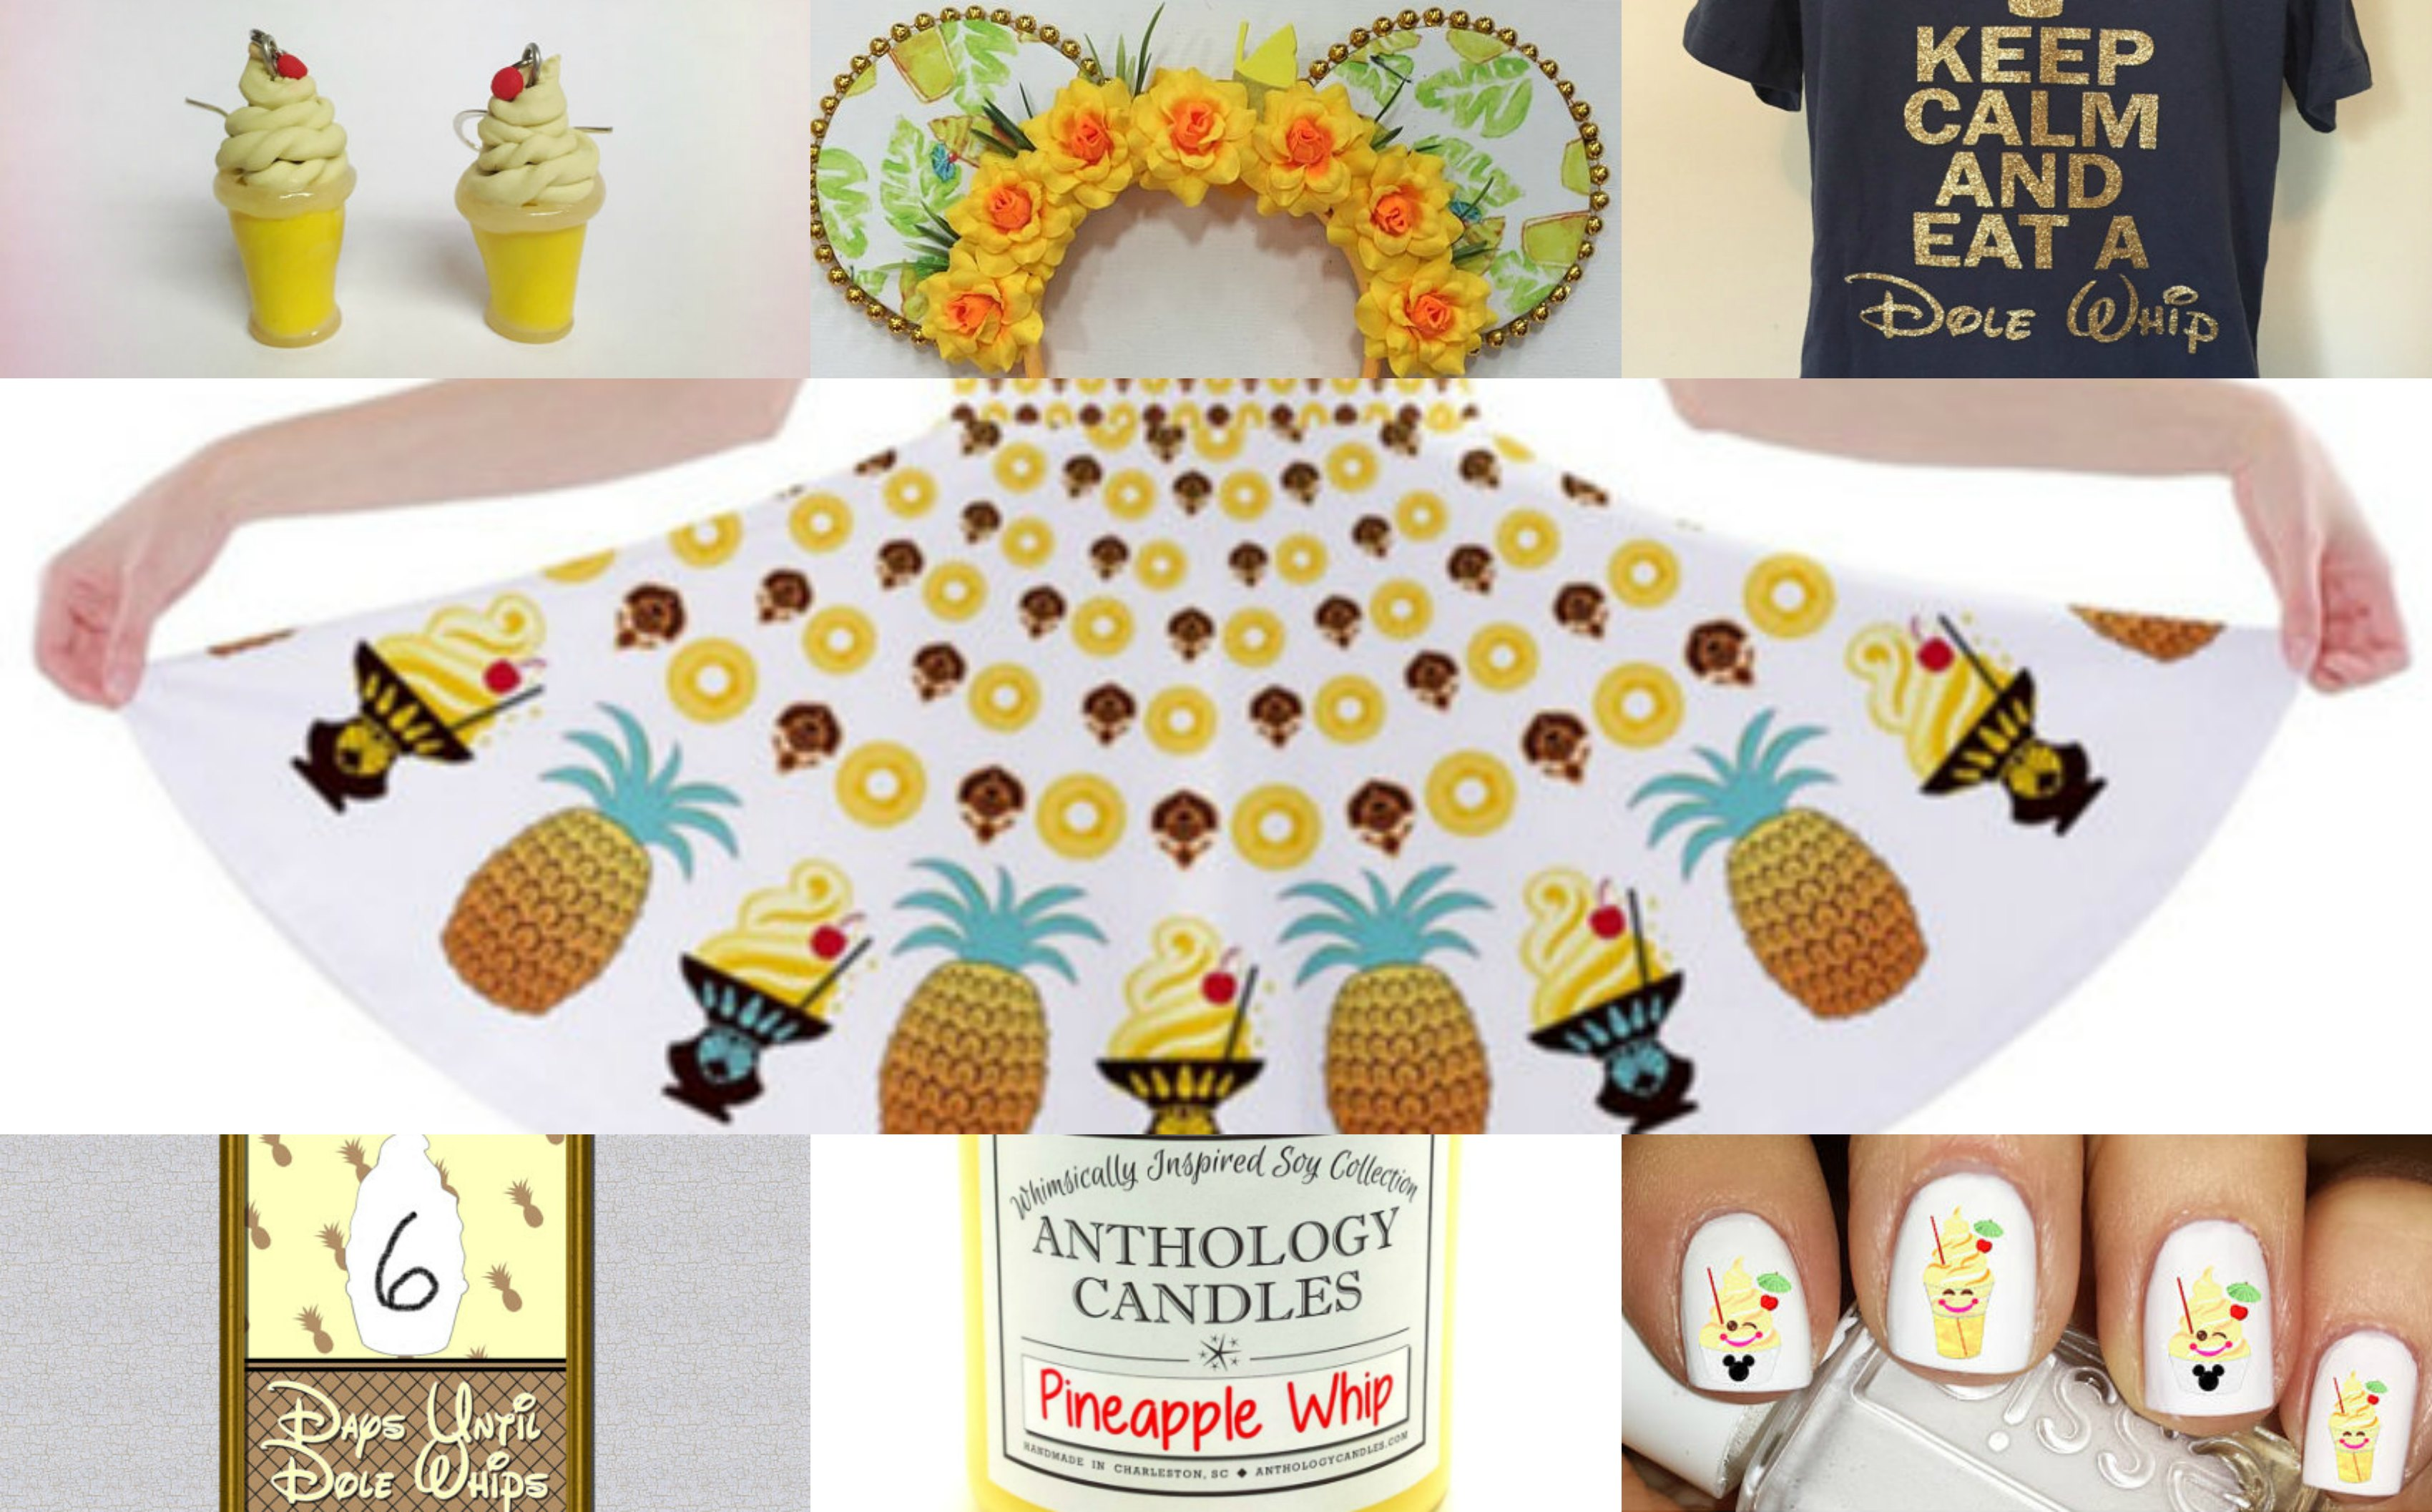 Top 11 Dole Whip-Inspired Products You Can Buy Now on Etsy